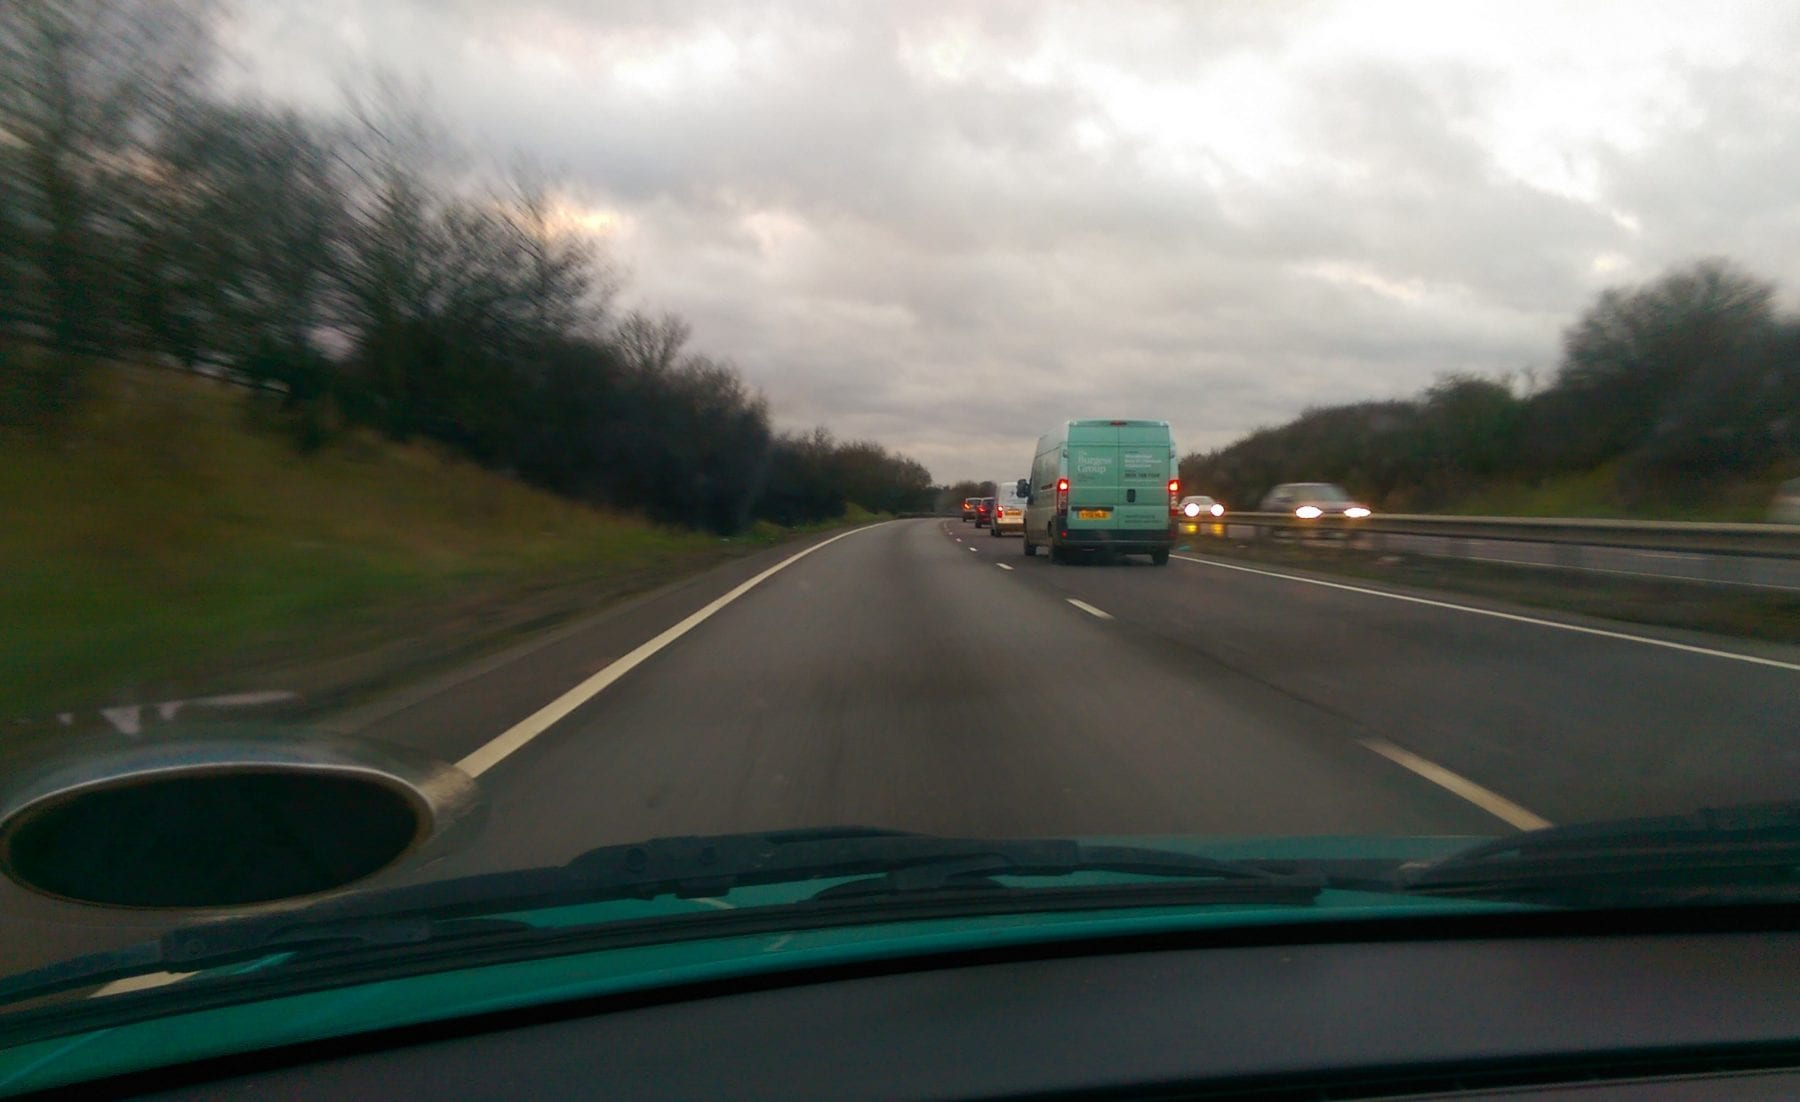 A303 and M3 - before the storm